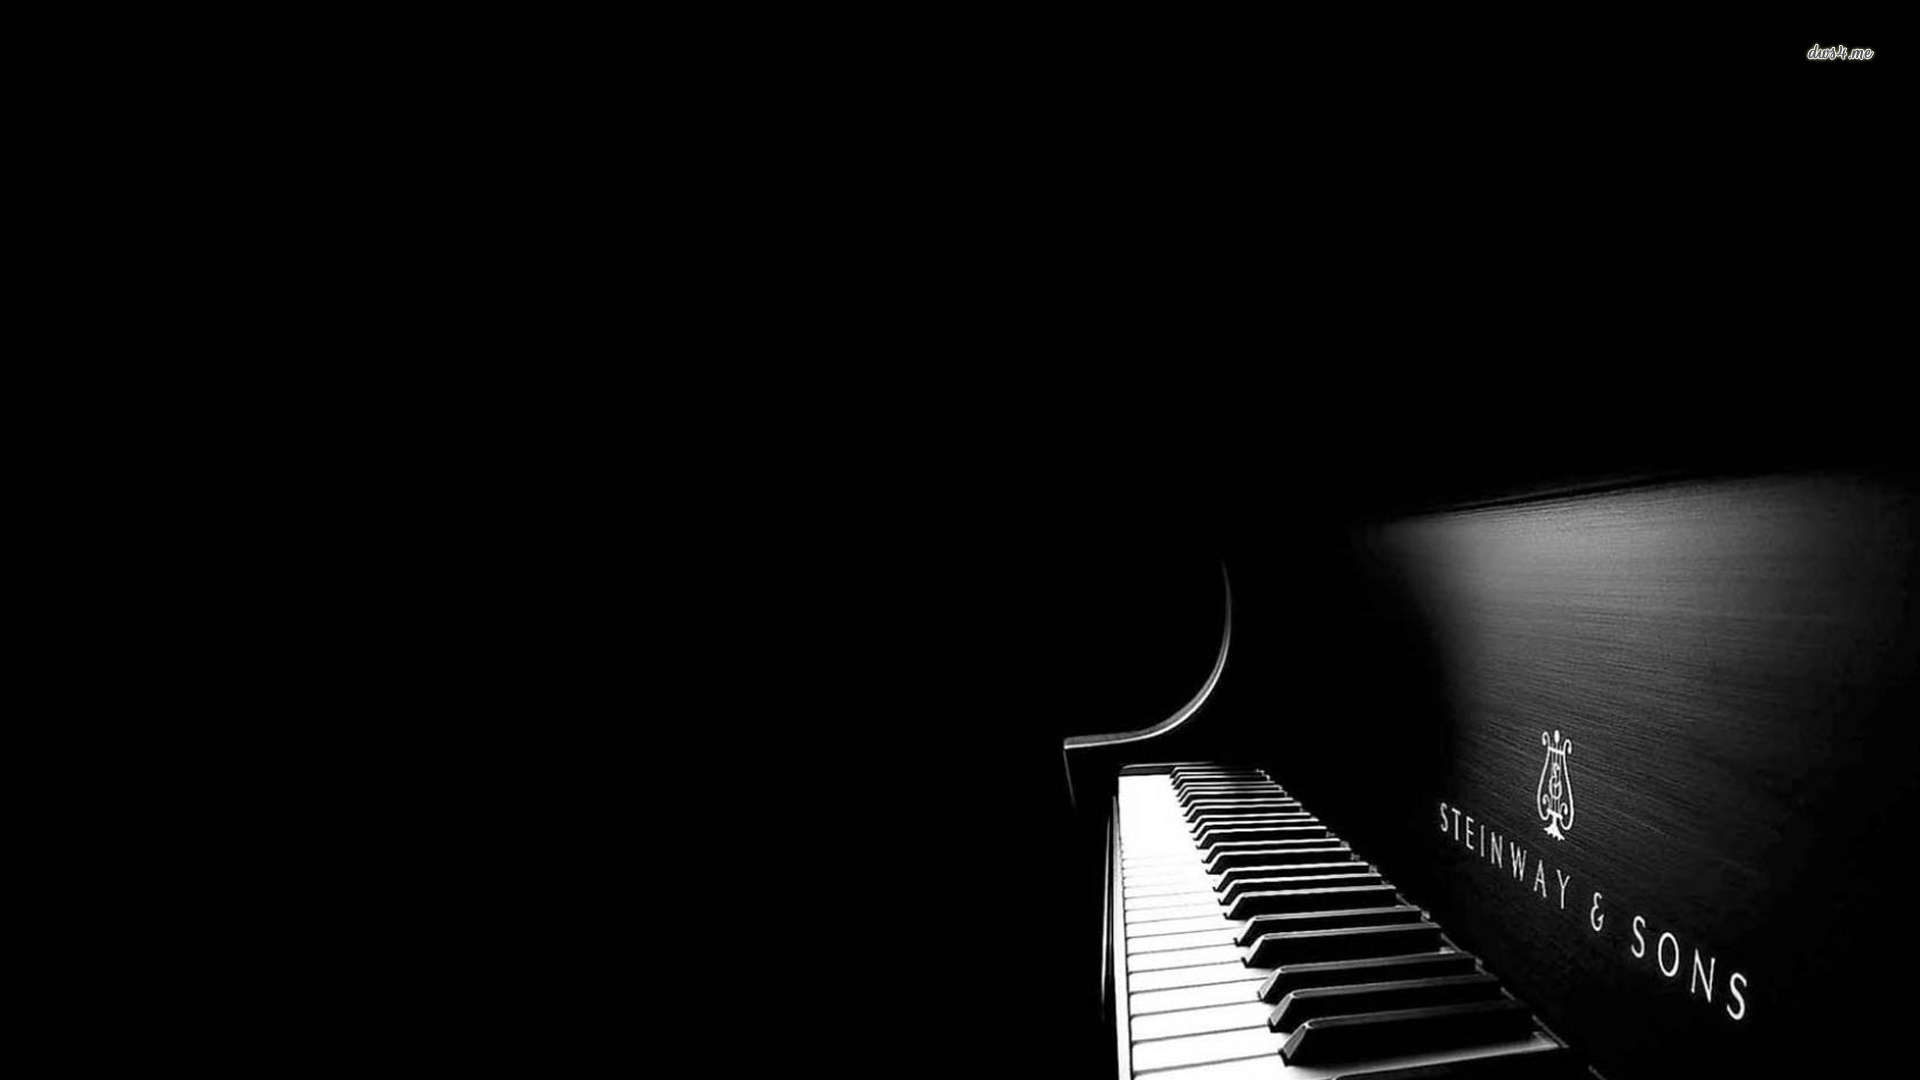 19708 steinway sons piano 19201080 music wallpaper Queens 1920x1080